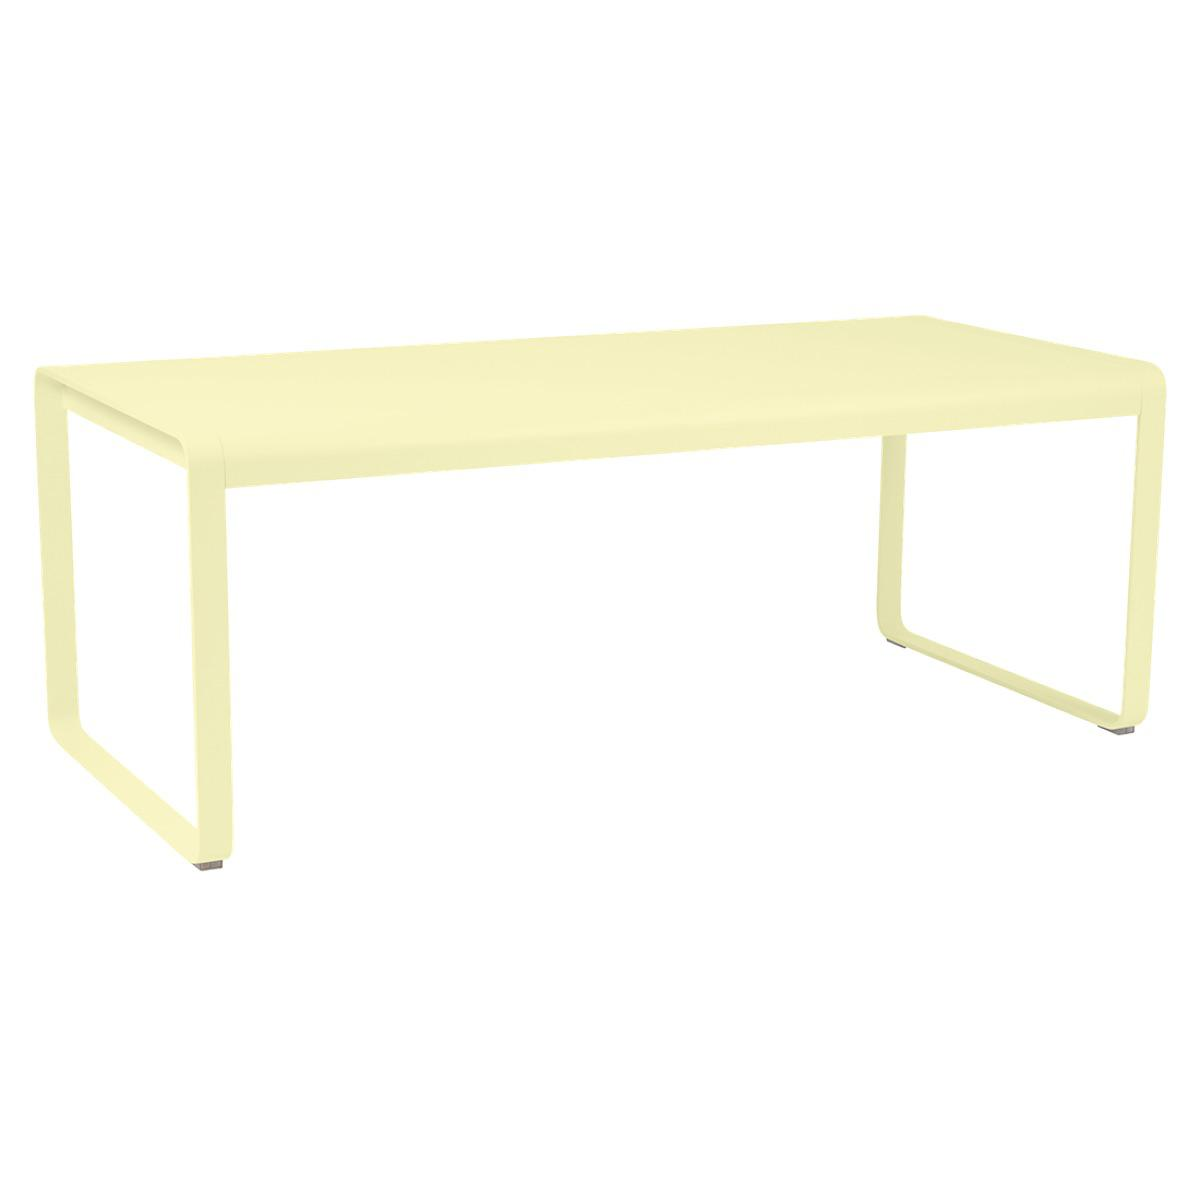 Table 90x196cm BELLEVIE PREMIUM Fermob citron givré